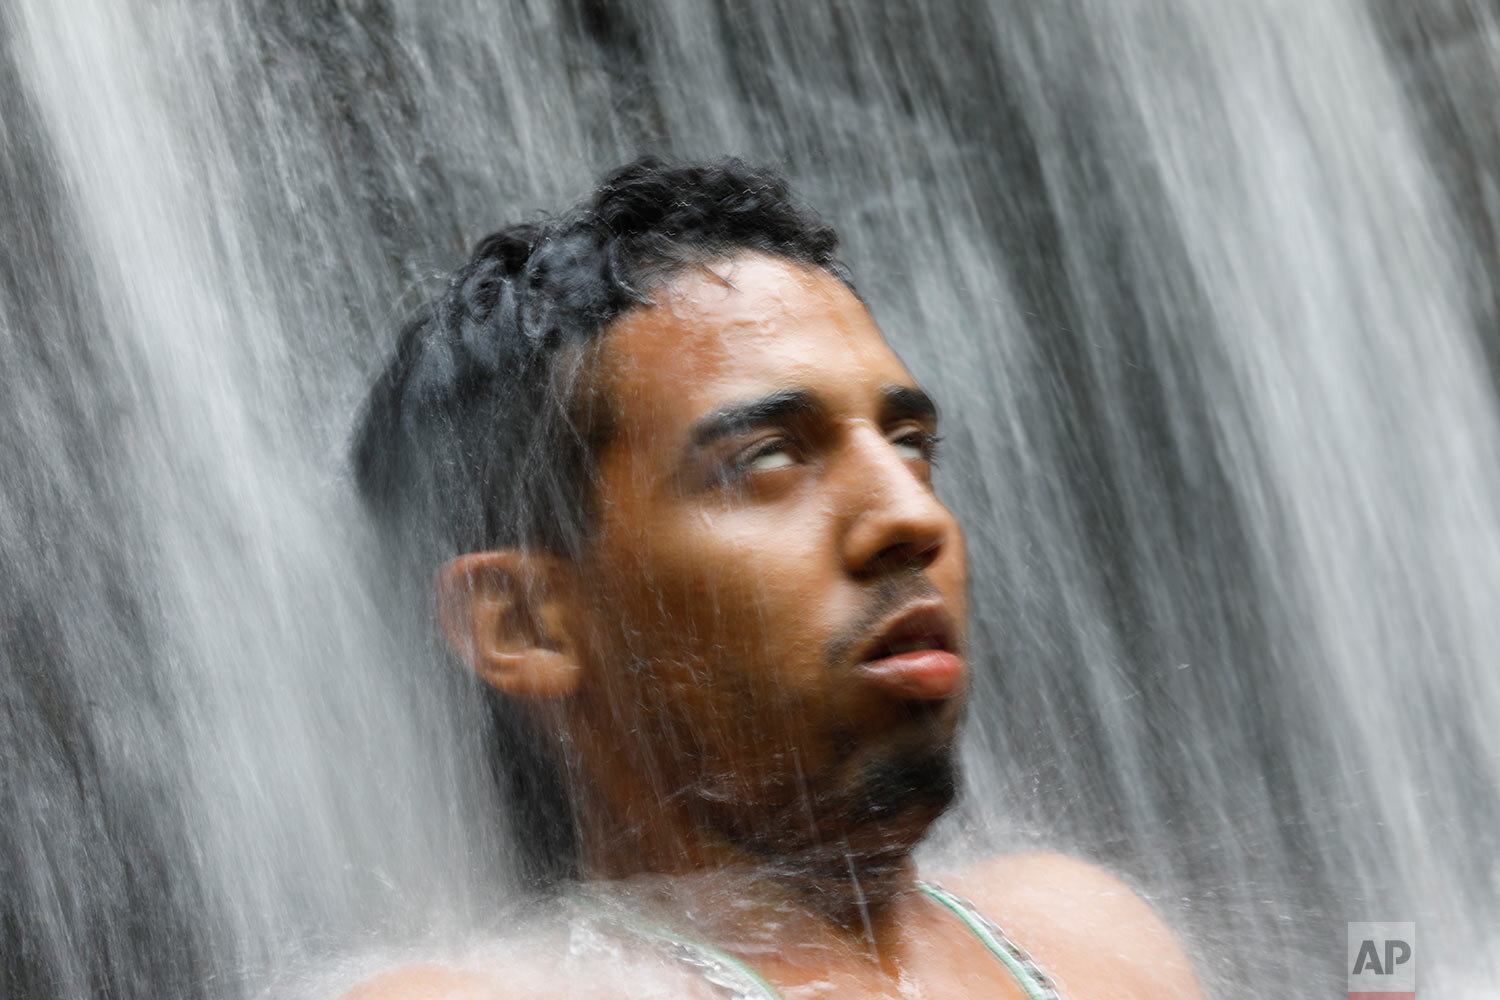 In this photo taken Oct. 12, 2019, a man with his eyes rolled back stands under a waterfall during a spiritual ceremony on Sorte Mountain where followers of indigenous goddess Maria Lionza gather annually in Venezuela's Yaracuy state. (AP Photo/Ariana Cubillos)